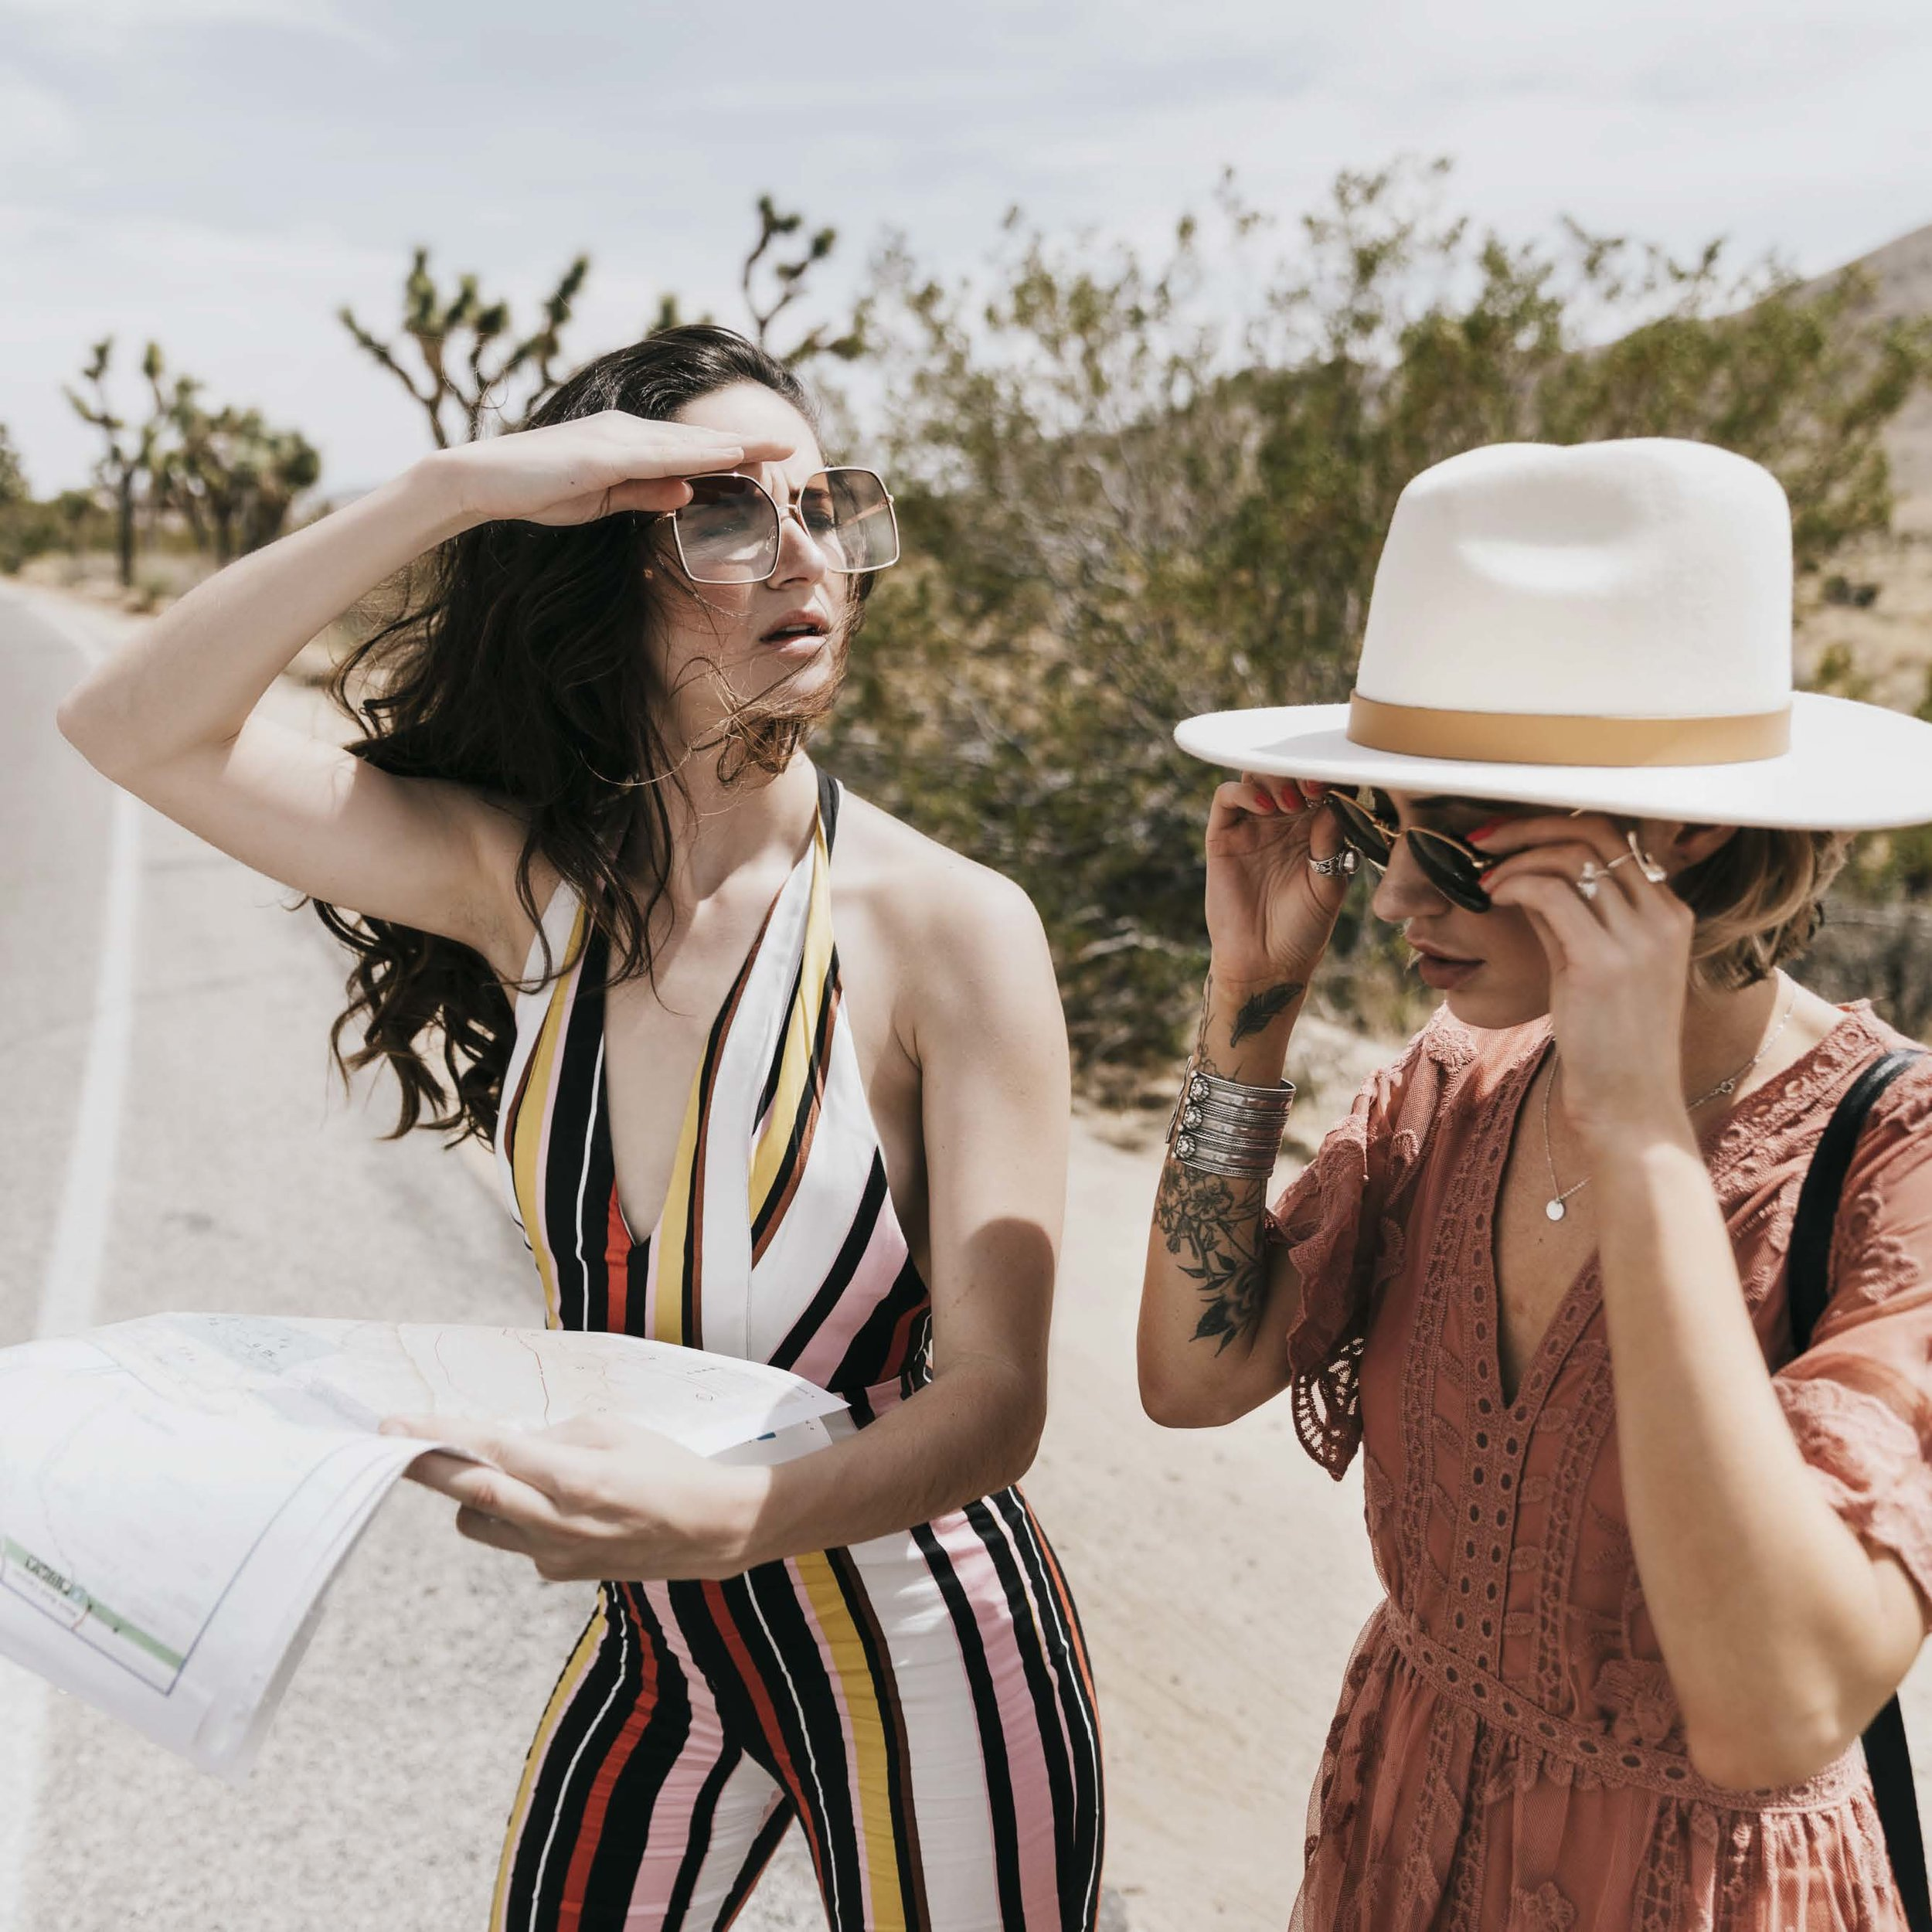 """""""roadtrippin'"""" for promo mag - This story was put together by an amazing FULL TGS TEAM! Models/Stylists: Christy Soeder and Jackie Fernandez. Photographer: Daniel Brittain. Makeup Artist: Alex Flores. This is a gorgeous summer vibe Joshua Tree set that you won't want to miss!Check It Out!"""